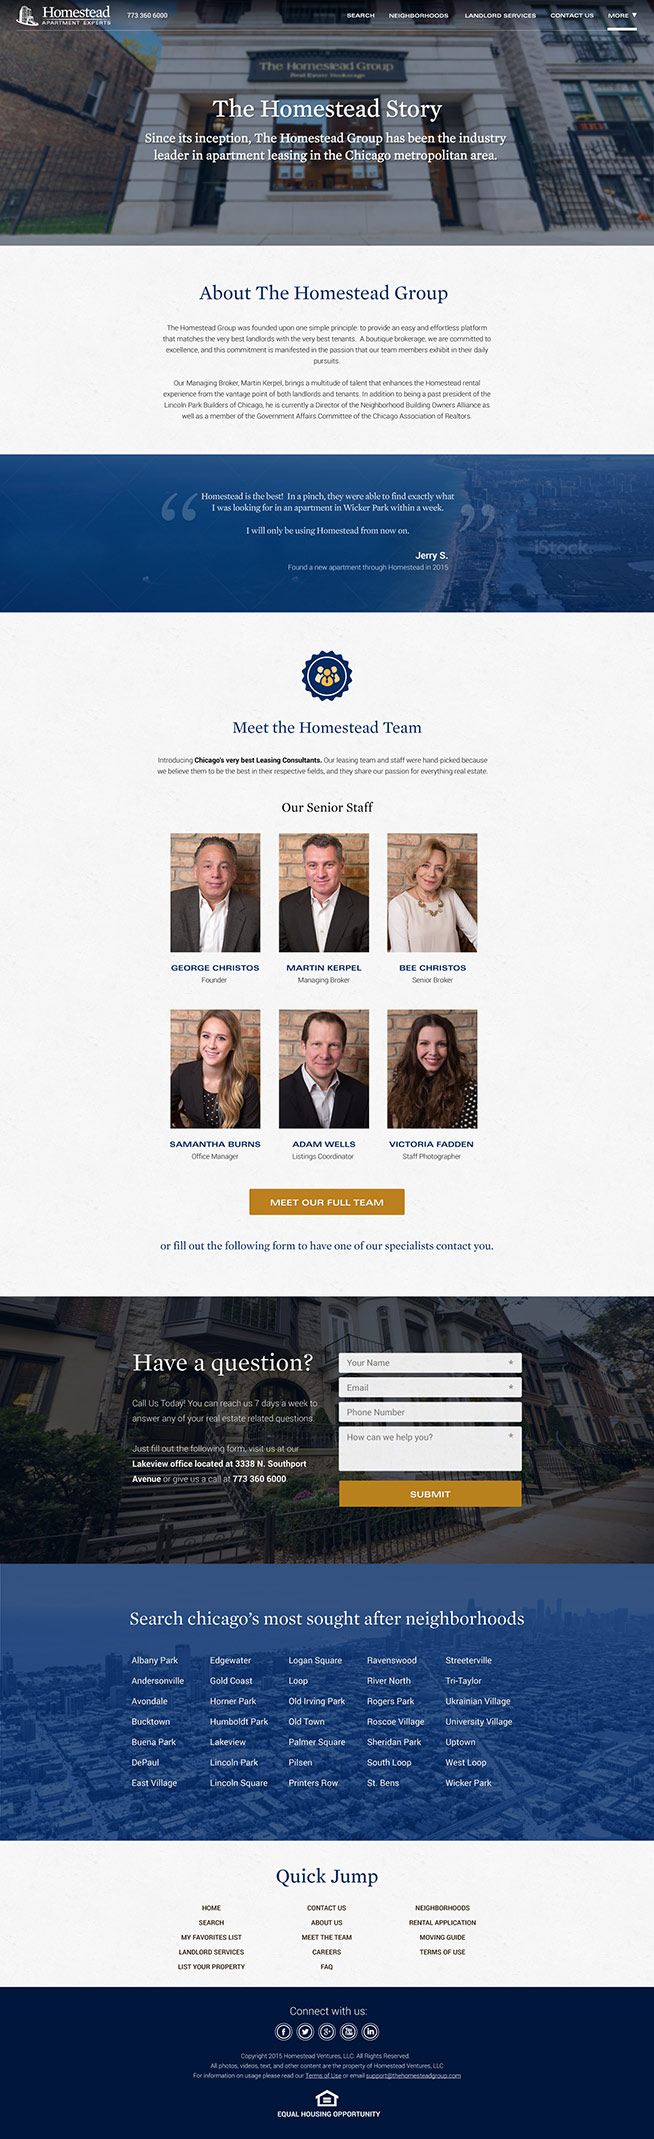 Homestead Group - Corporate Page